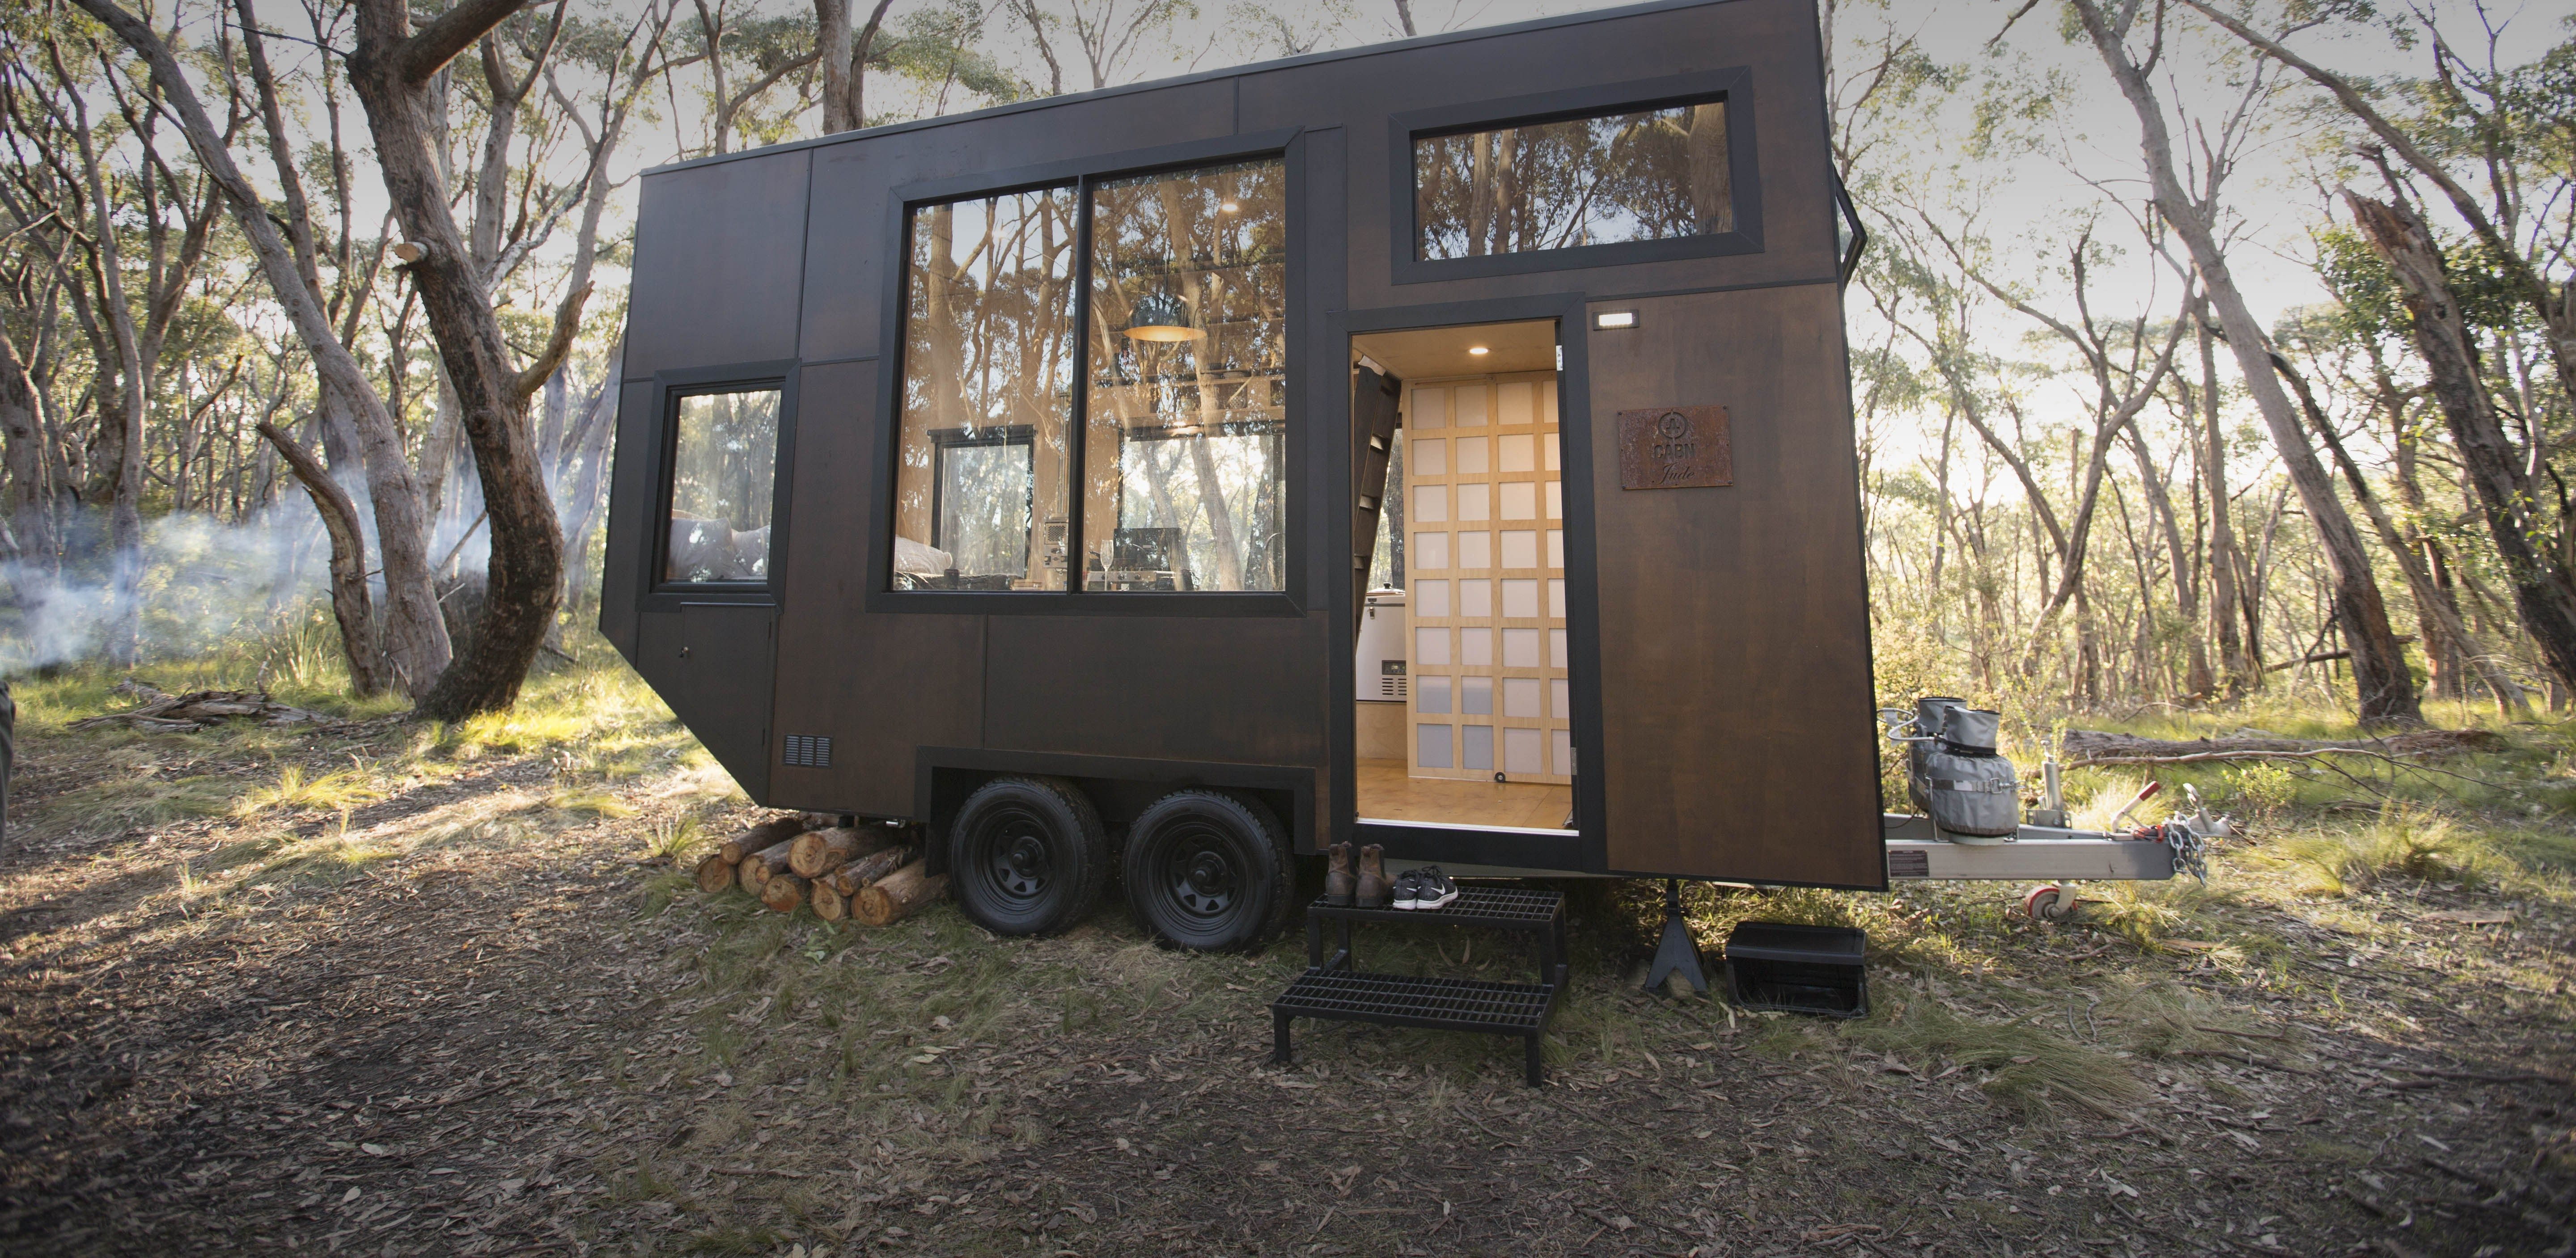 Are you interested in buying an offgrid sustainable cabin